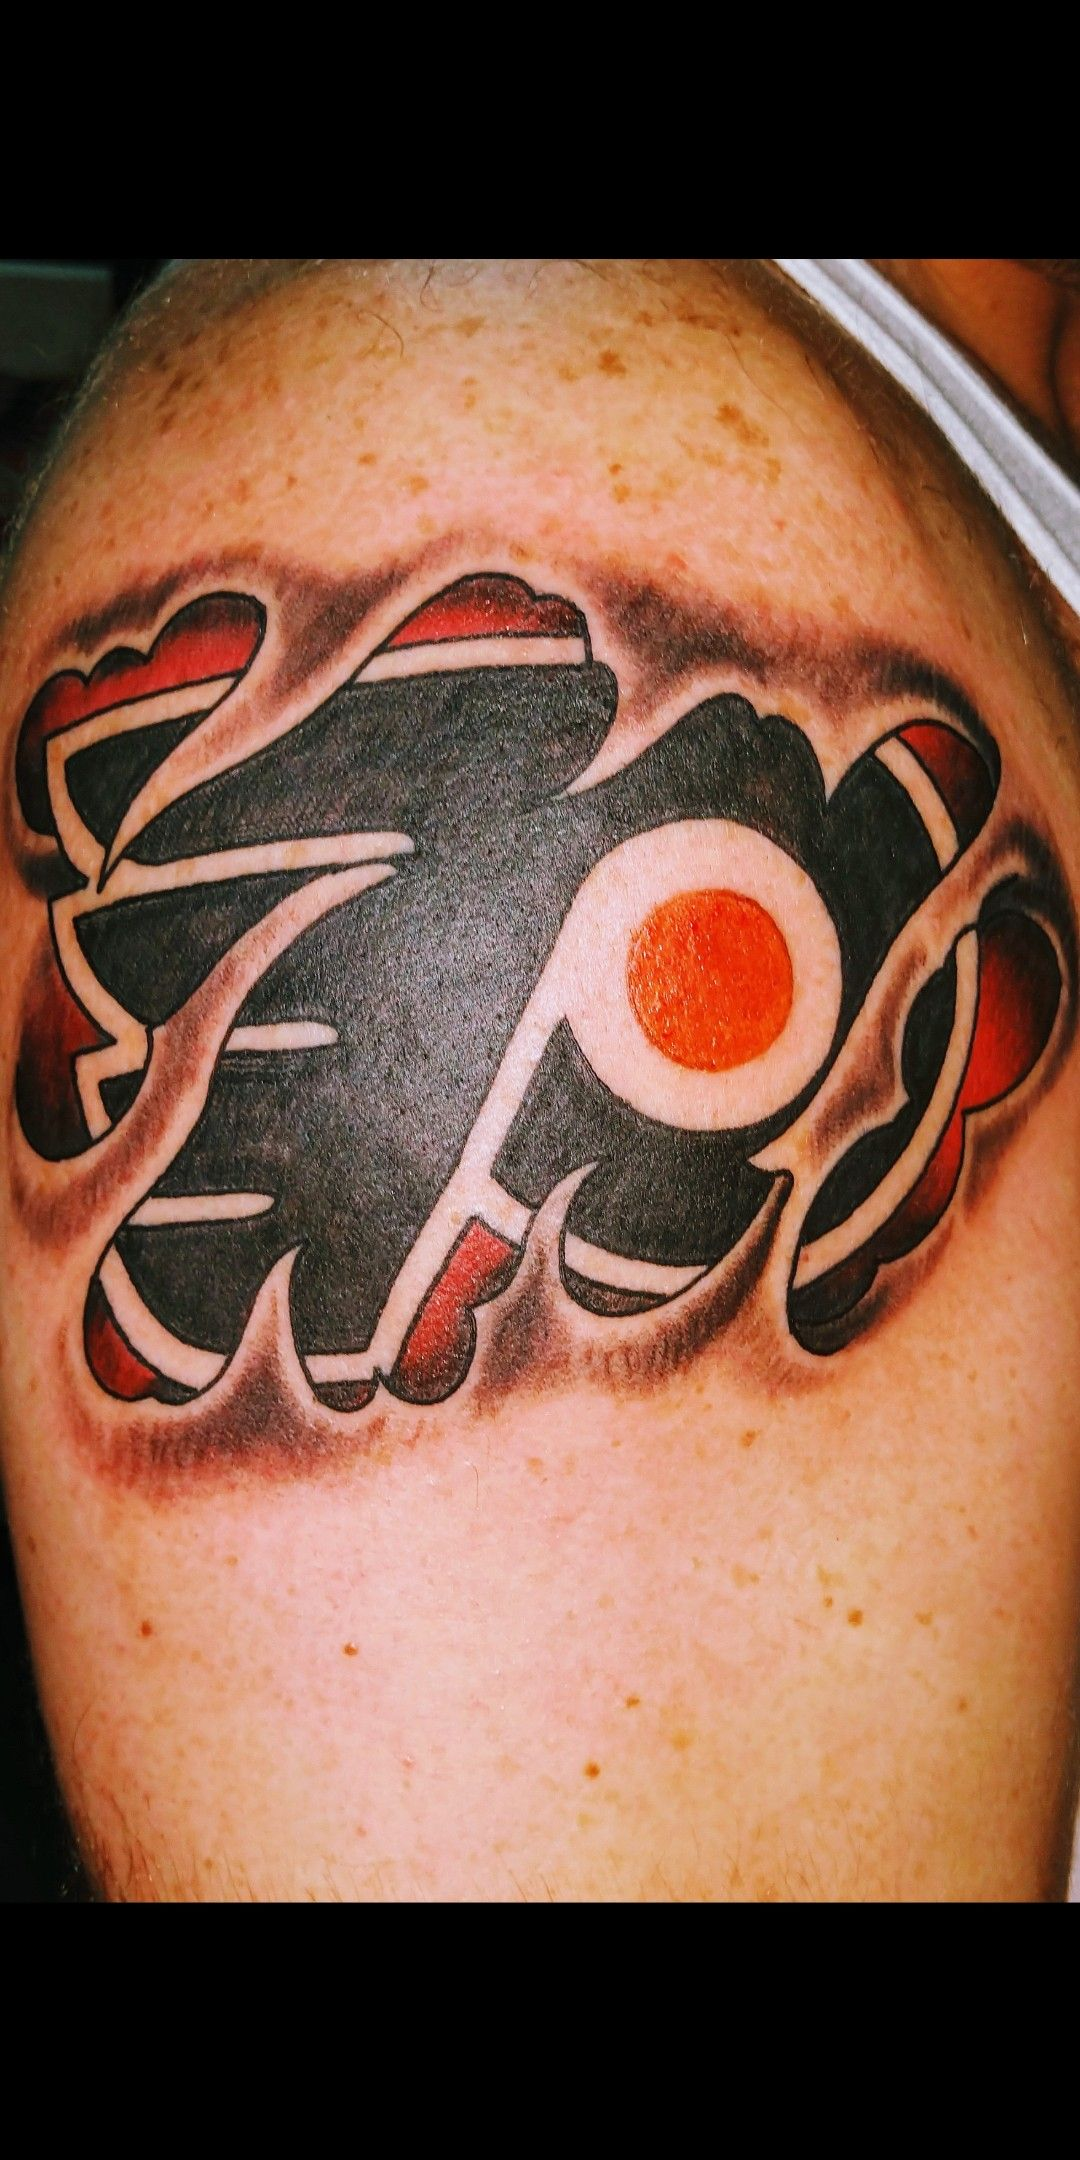 Pin by Letsgoflyers on Flyers Chicago flag tattoo